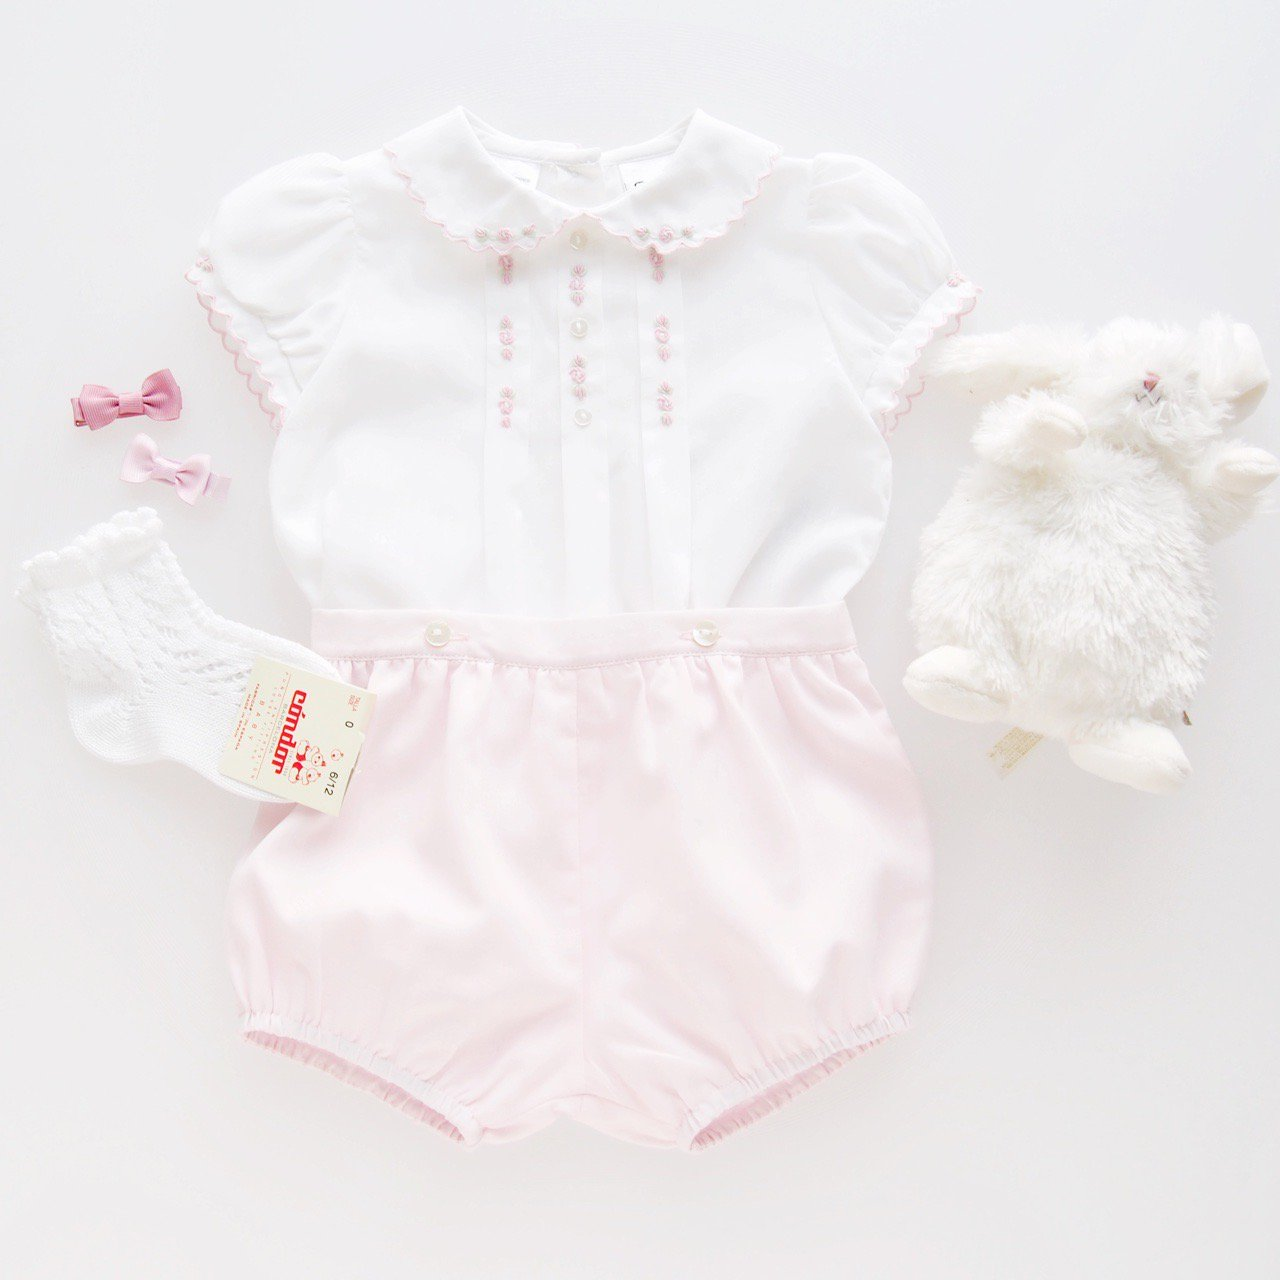 <img class='new_mark_img1' src='https://img.shop-pro.jp/img/new/icons1.gif' style='border:none;display:inline;margin:0px;padding:0px;width:auto;' />Sarah Louise - Embroidery blouse and Bloomer set (Pink)